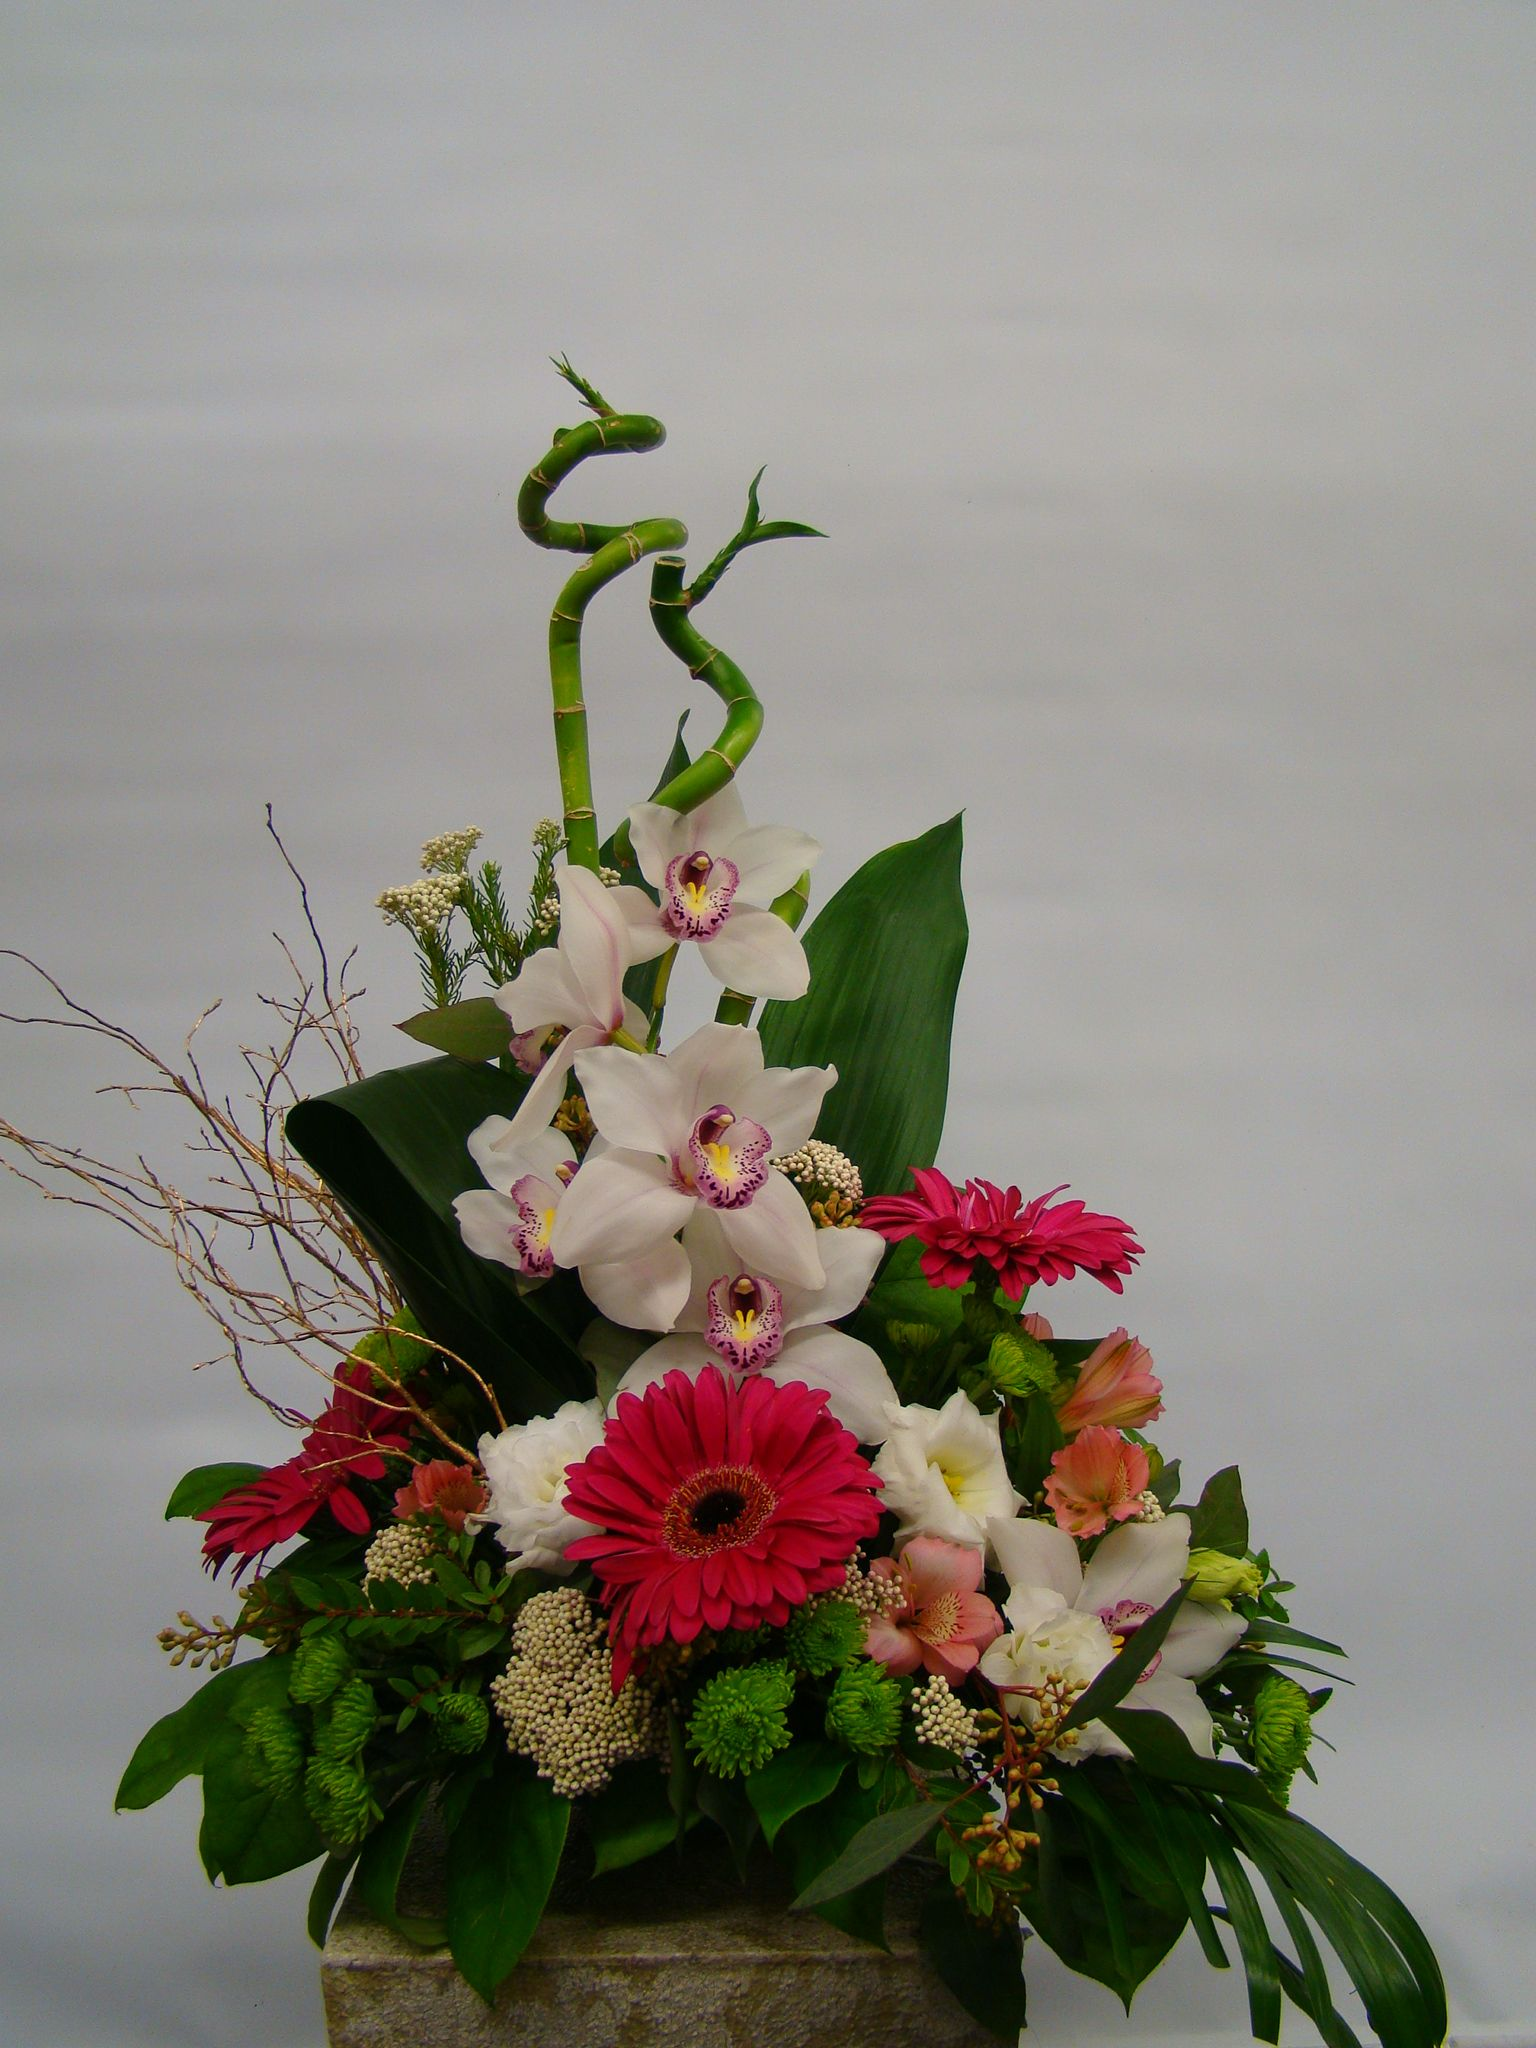 Ikebana flower arrangement pictures japanese ikebana style long ikebana flower arrangement pictures japanese ikebana style long lasting flower arrangement for weddings izmirmasajfo Image collections